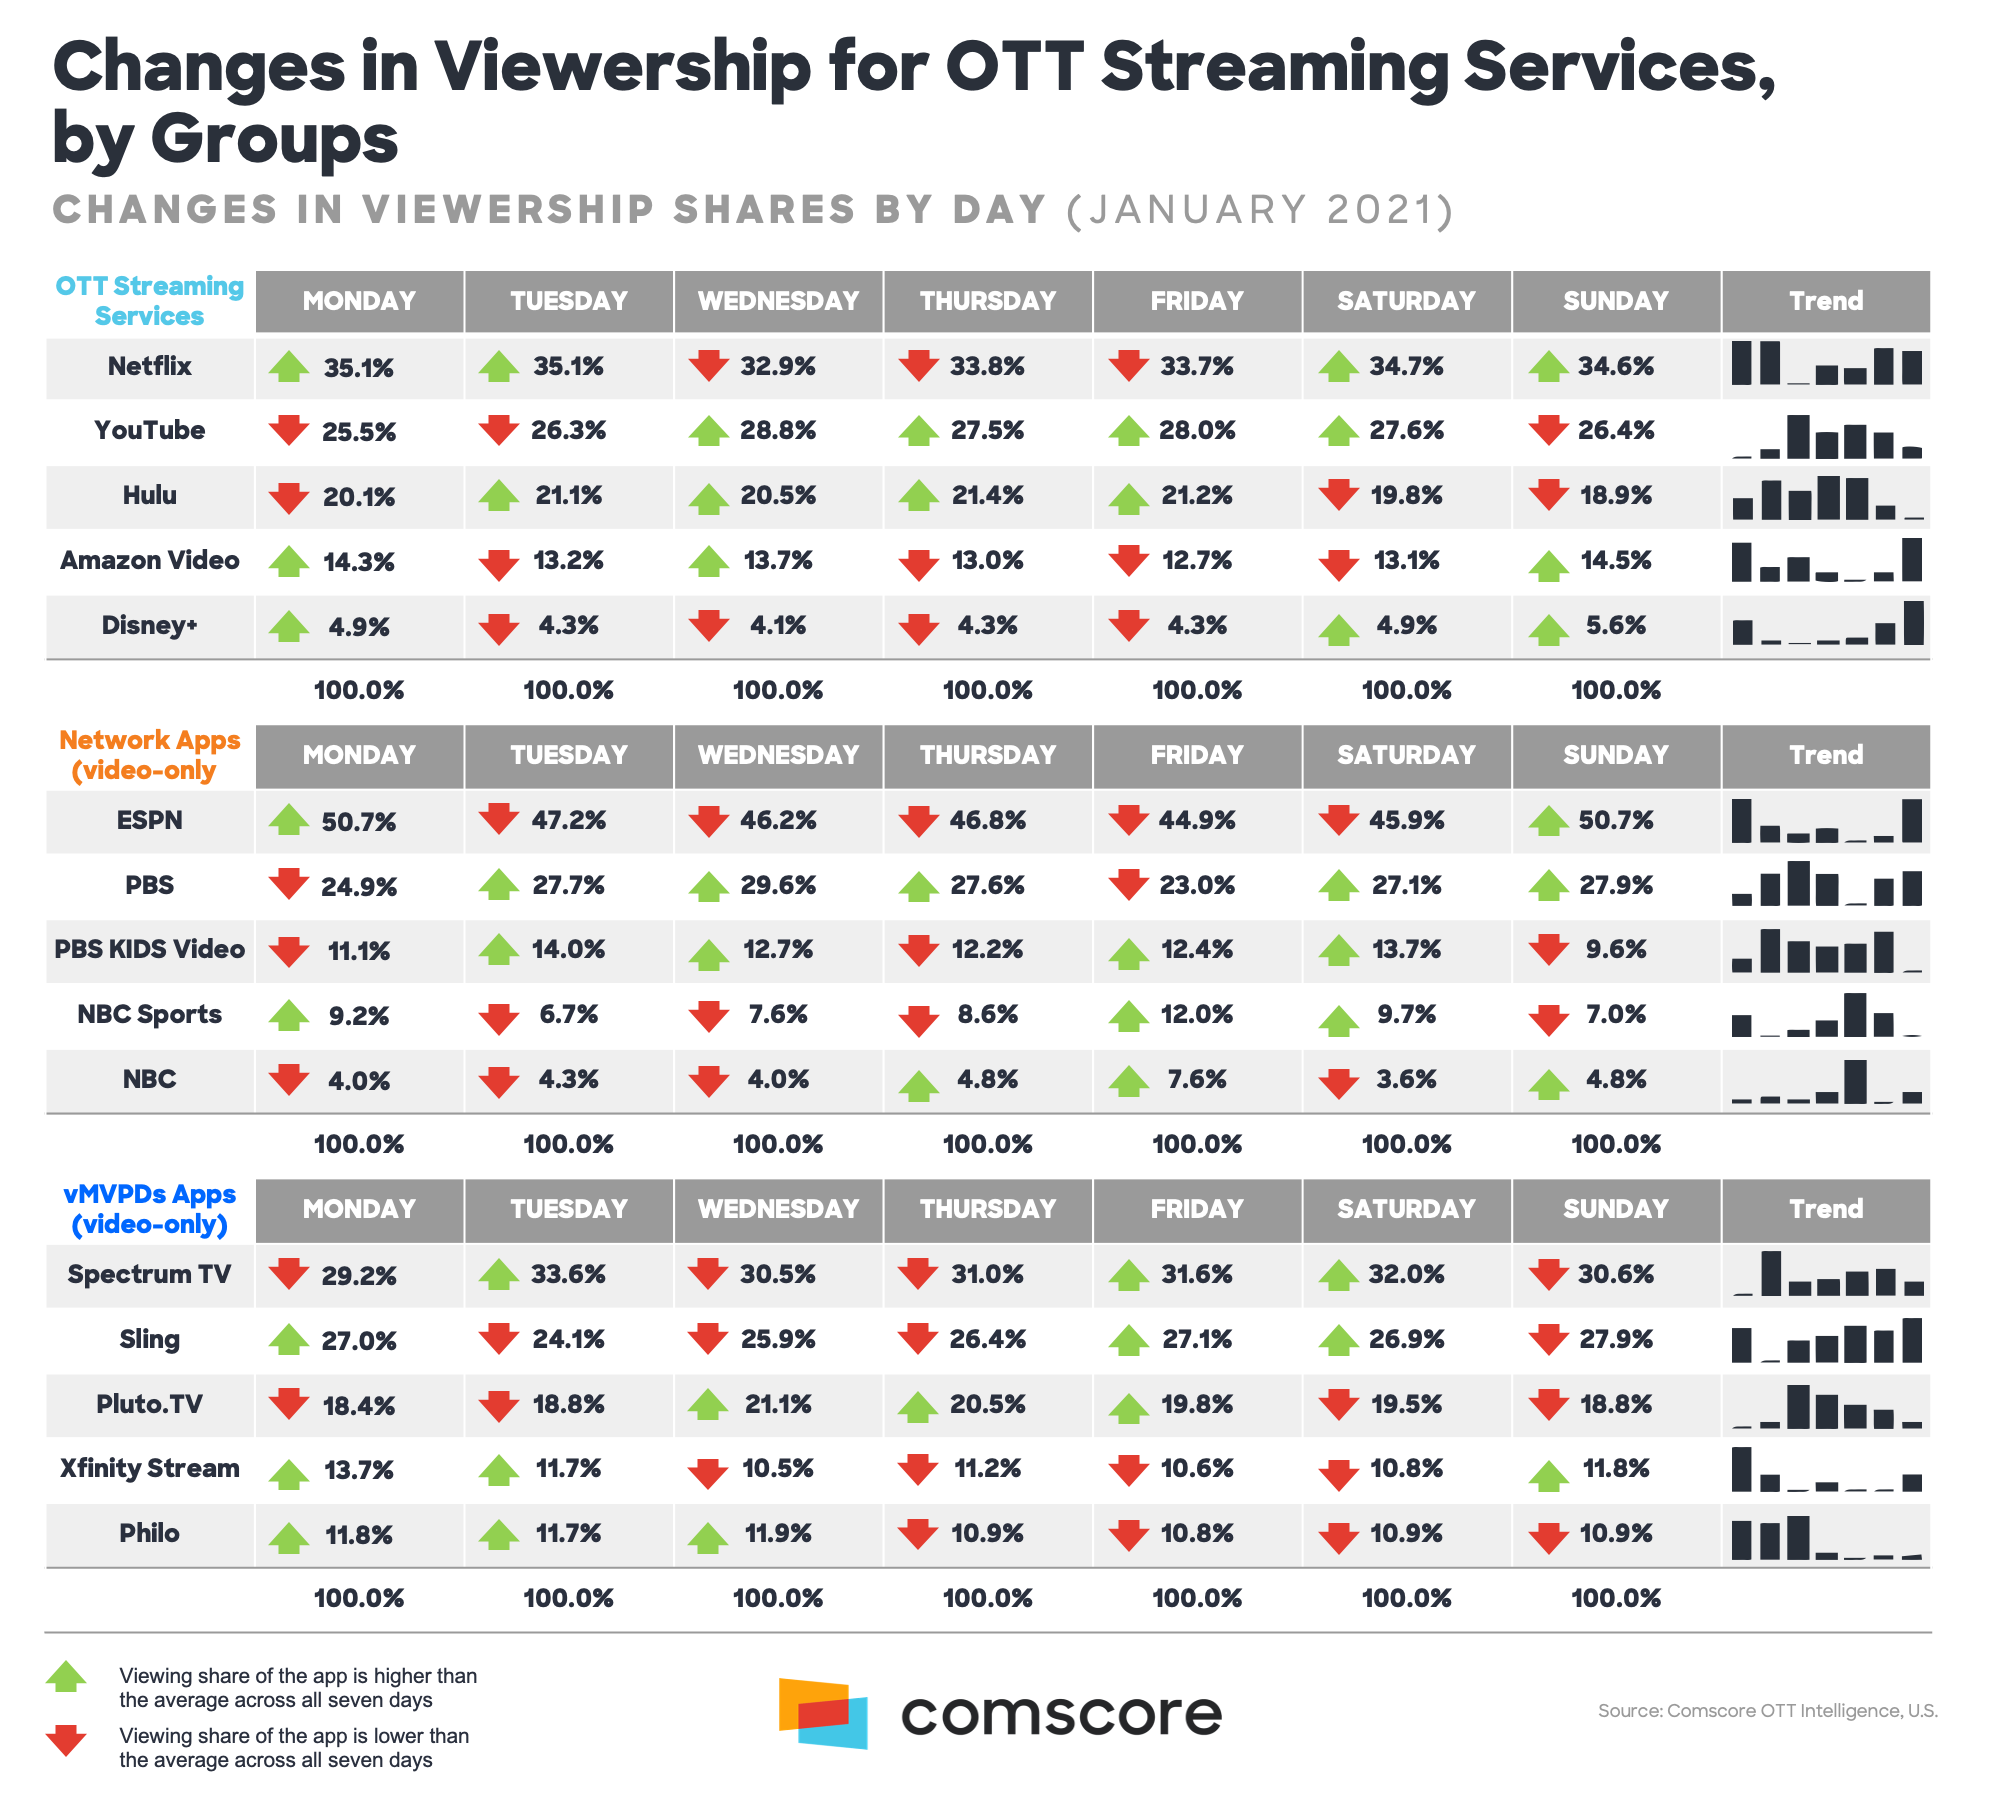 Changes in Viewership for OTT Streaming Services by Groups